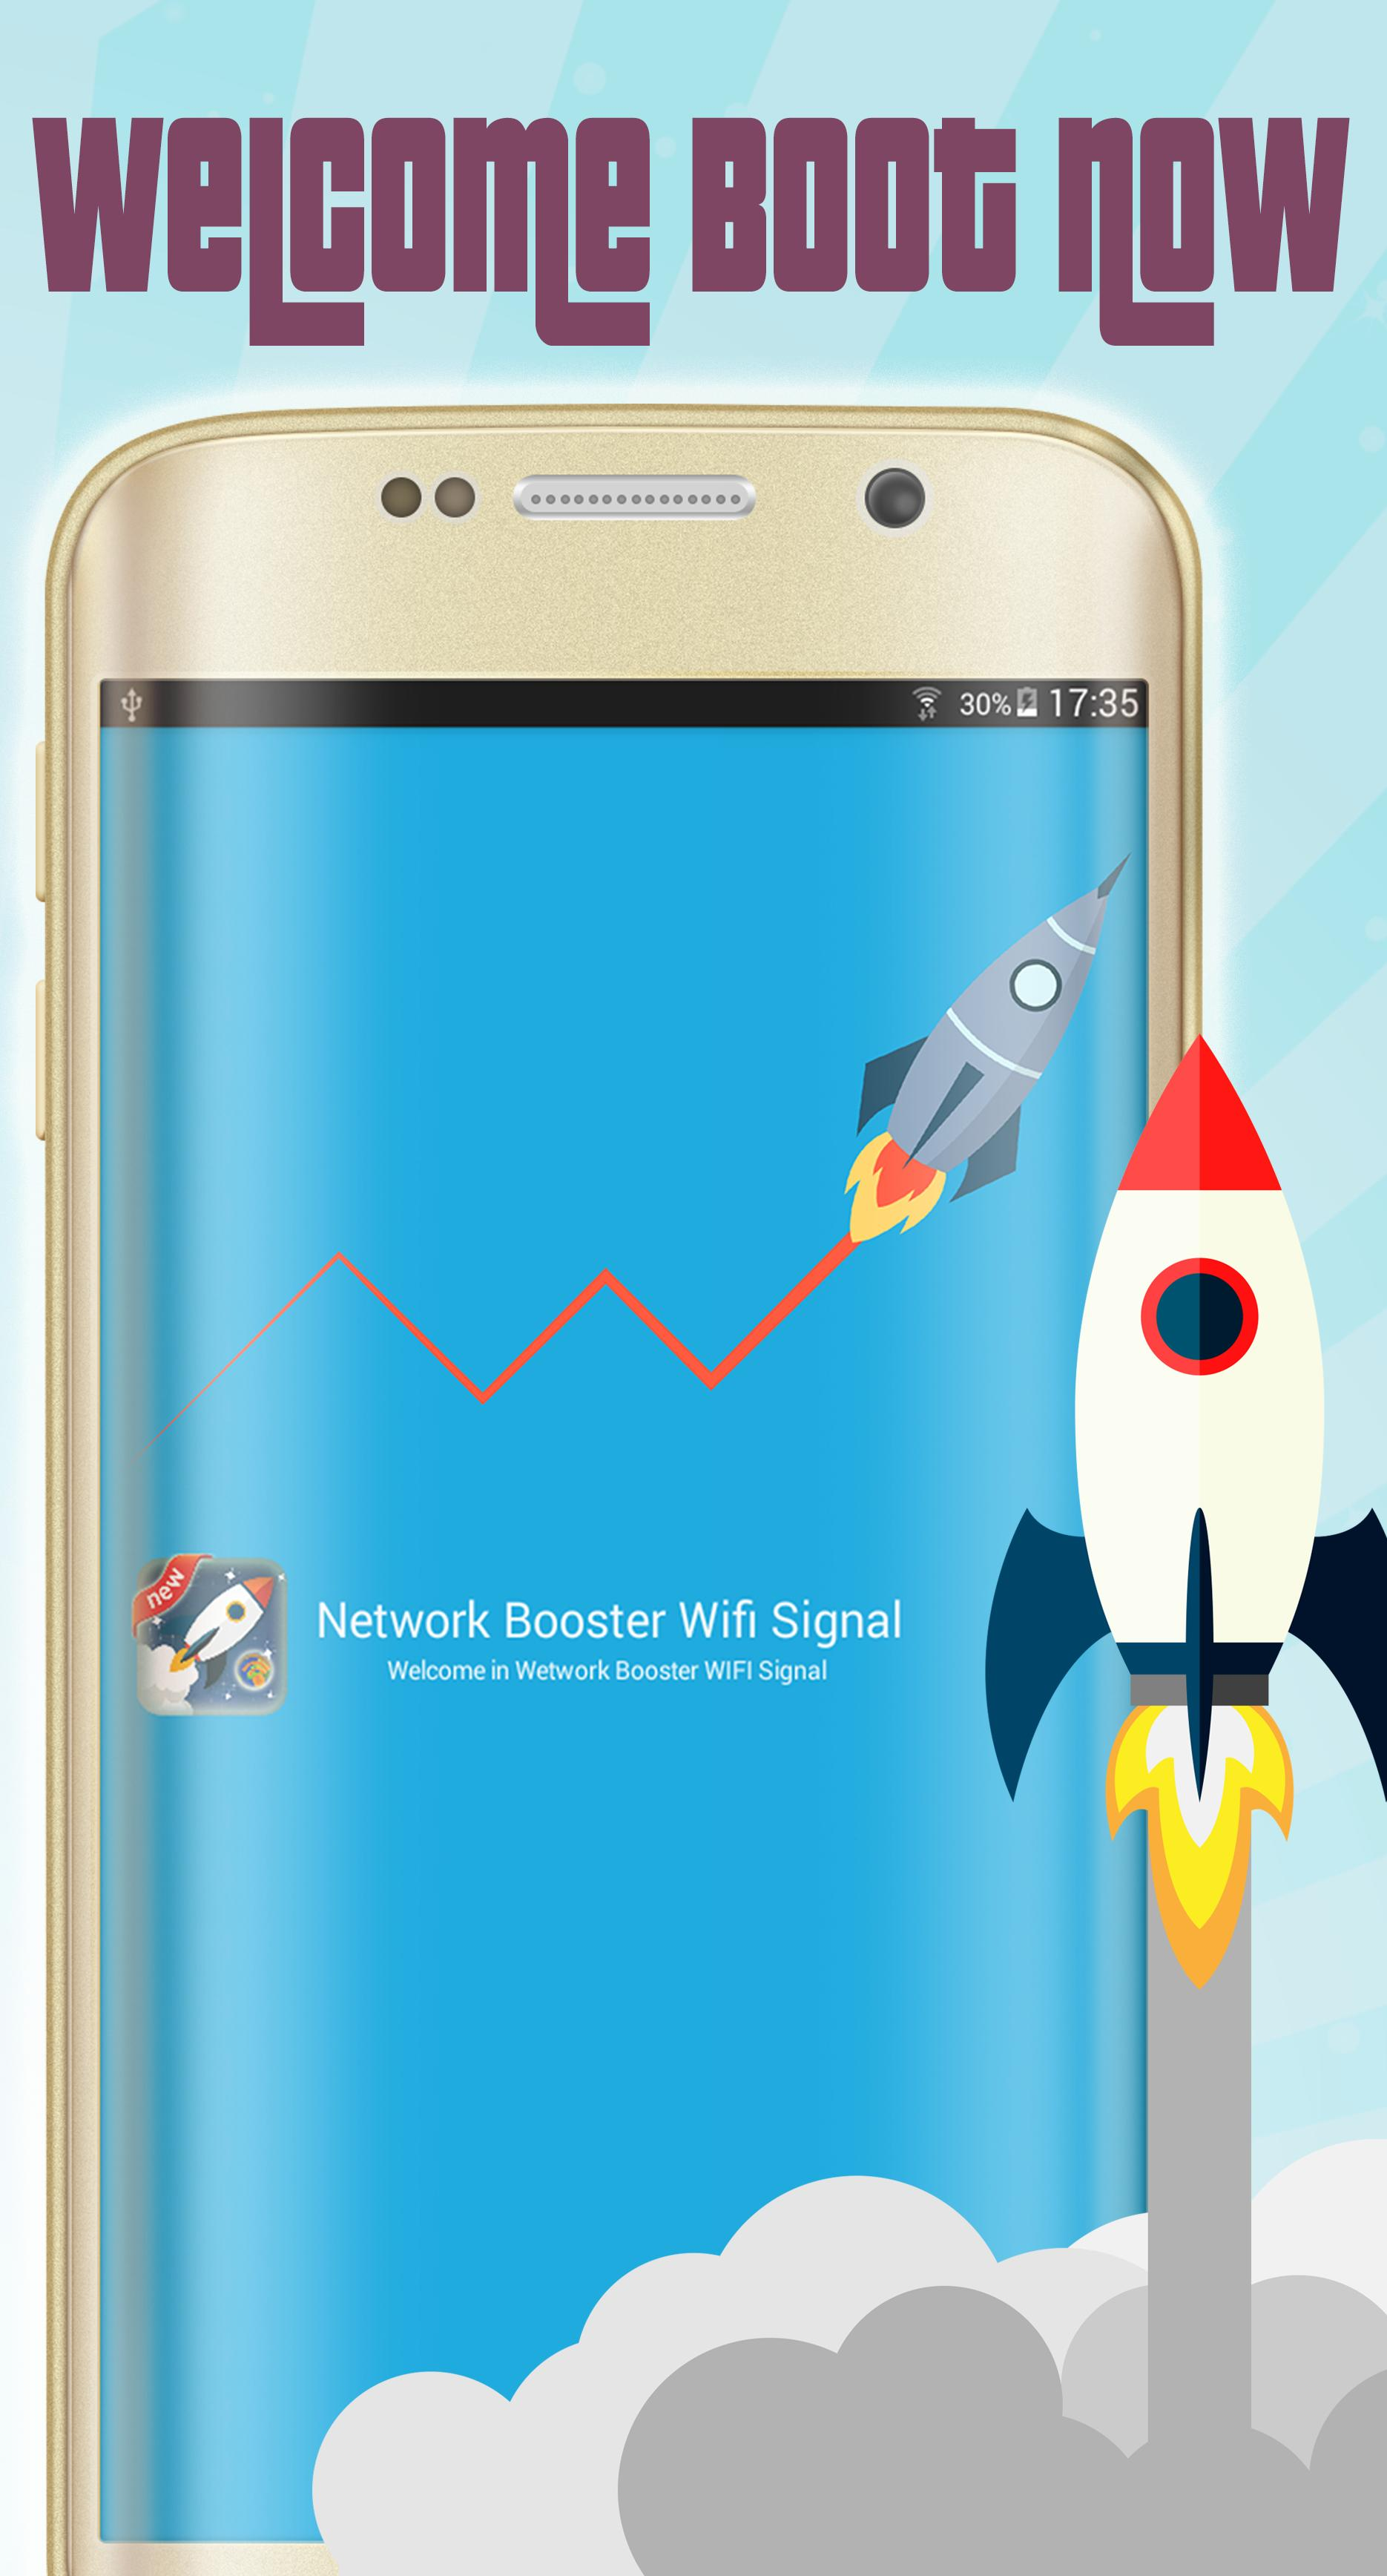 Network Booster Wifi Signal for Android - APK Download